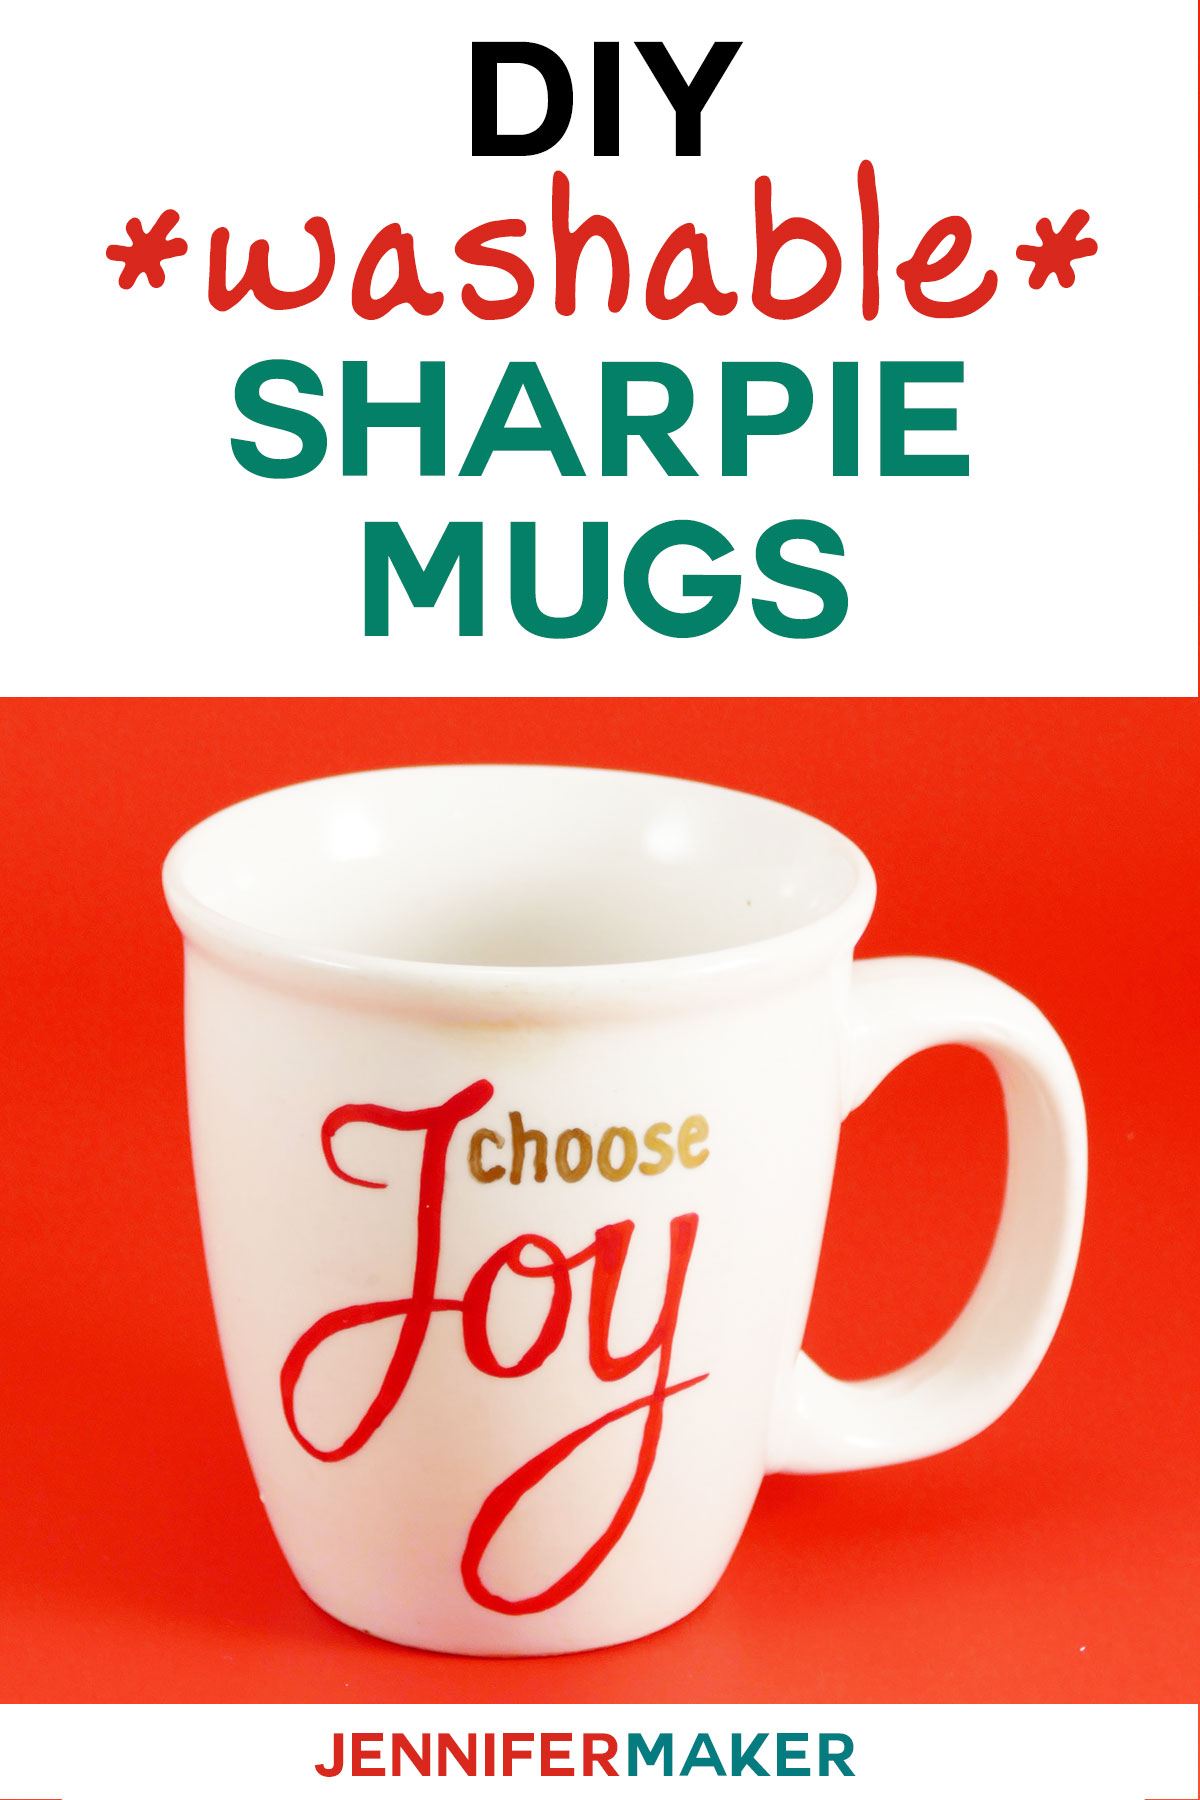 Diy sharpie mugs for easy personalized gifts jennifer maker sharpie mug diy instructions my dishwasher safe sharpie mug ideas and designs make great solutioingenieria Choice Image